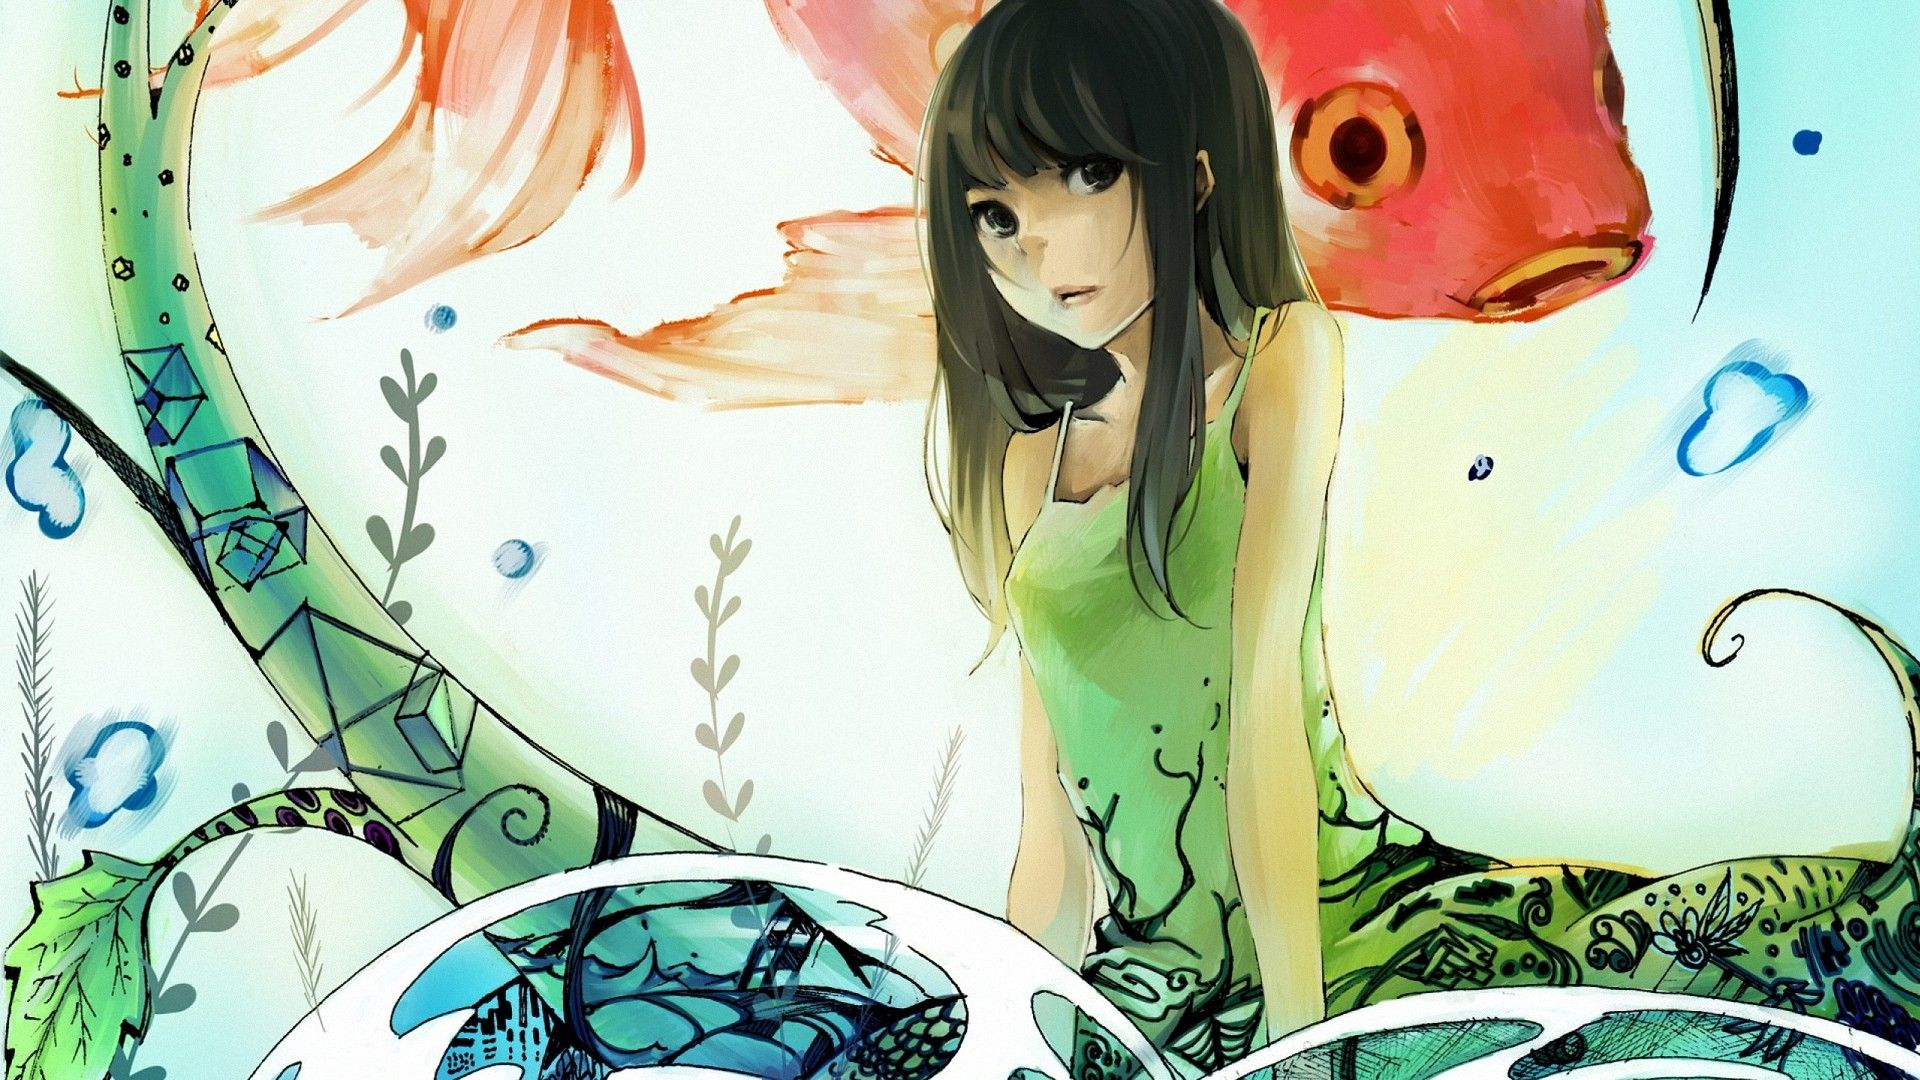 Abstract anime girls hd wallpapers anime hd wallpapers - Abstract anime girl ...